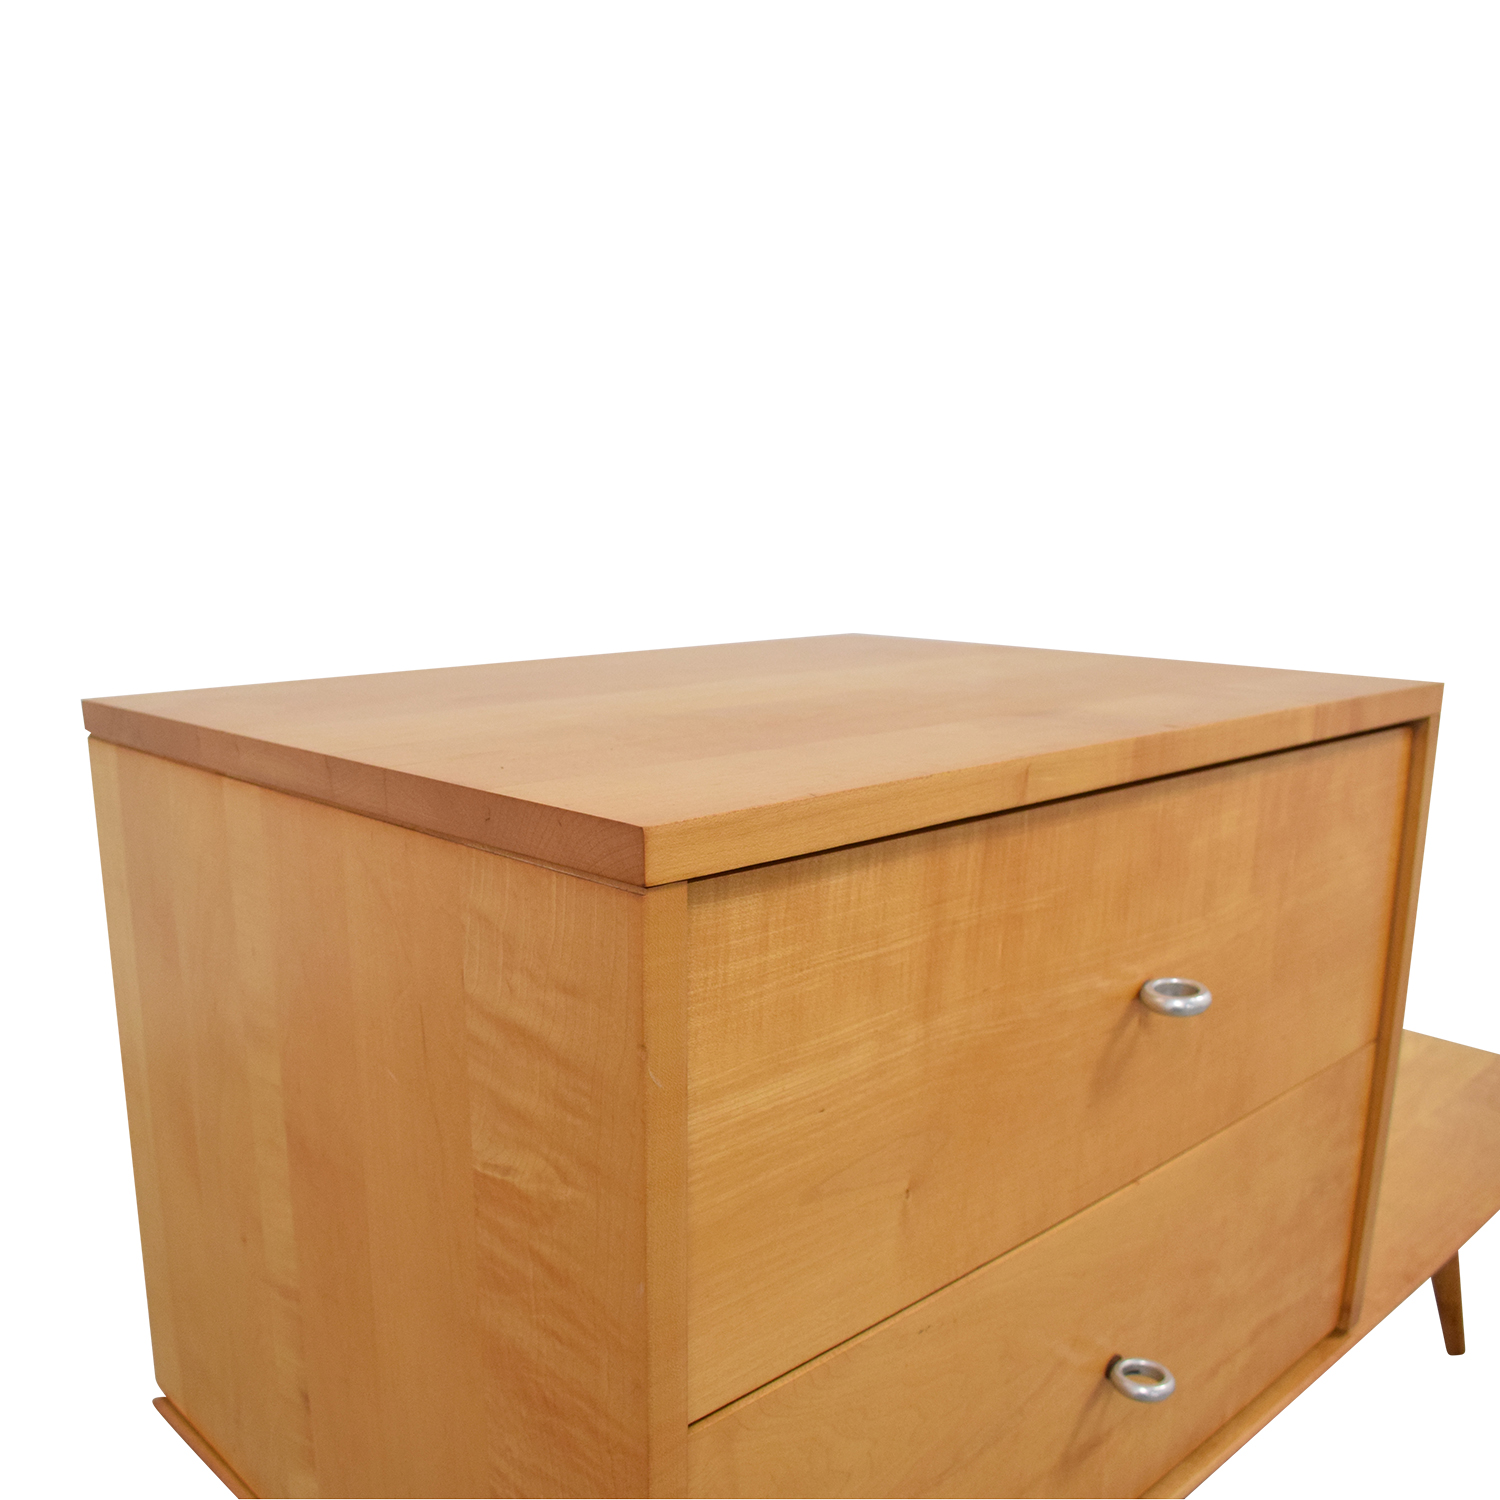 Paul McCobb Paul McCobb Planner Group Bench with Cabinet second hand